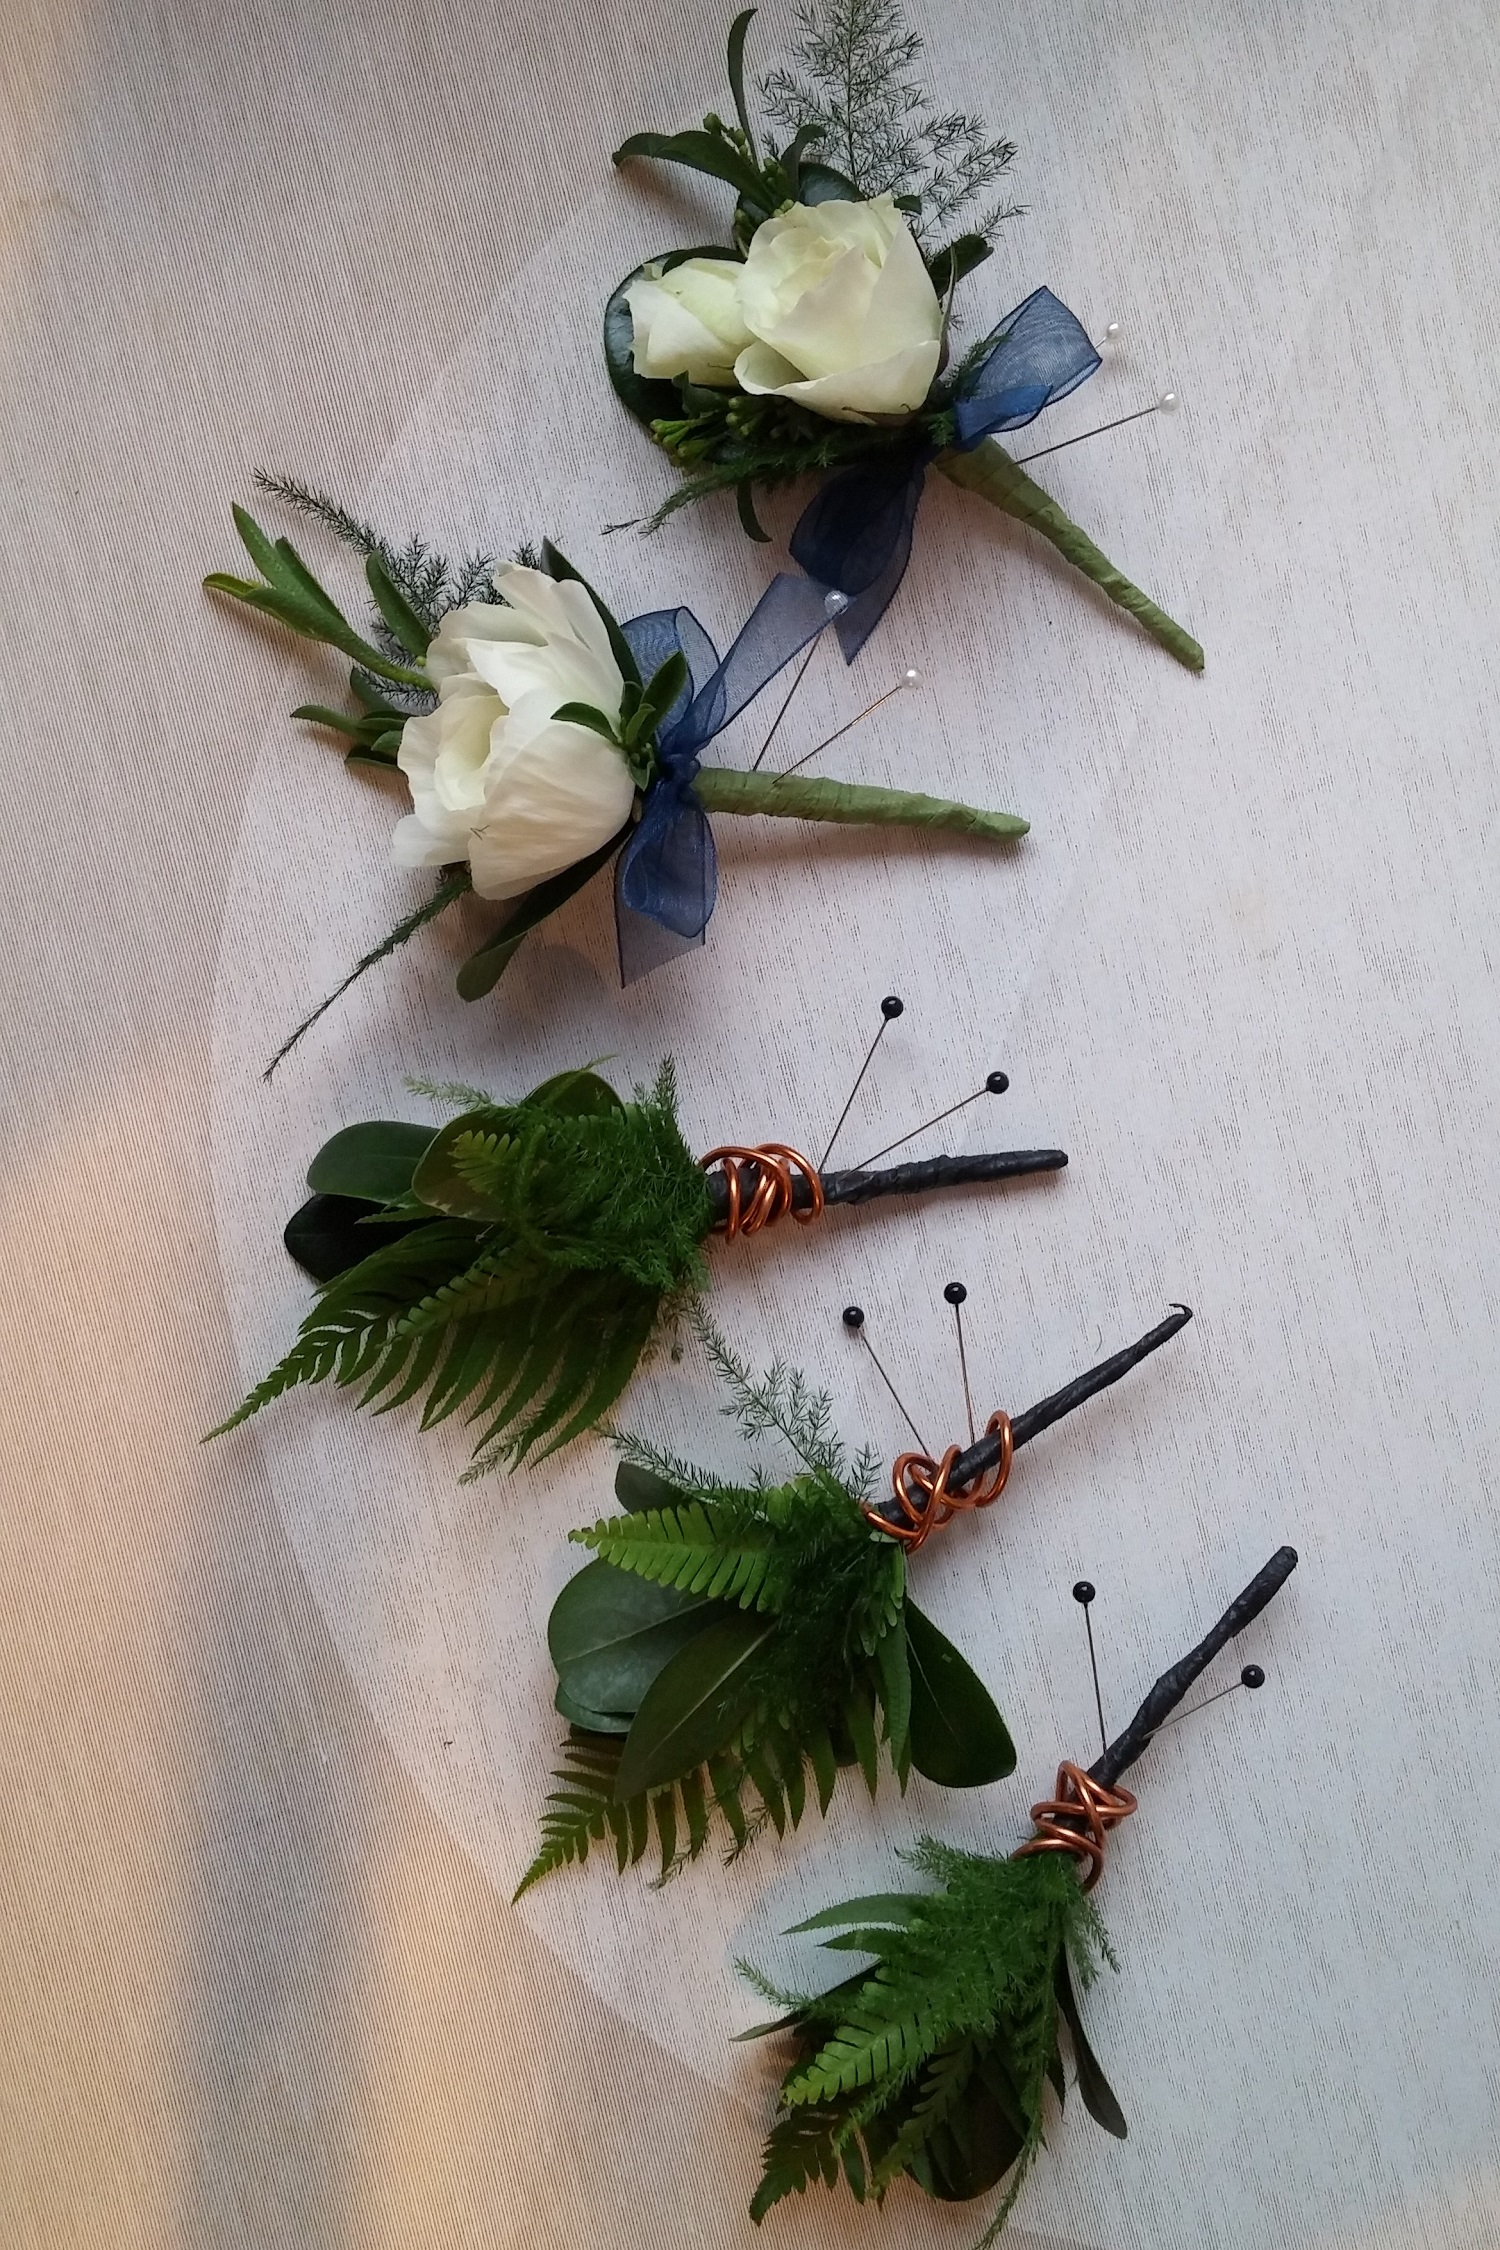 Minneapolis twin cities cool tones jewel tone boutonniere minneapolis twin cities cool tones jewel tone boutonniere flowers boutonniere white rose wedding greenery boutonniere for wedding boutonniere groom mightylinksfo